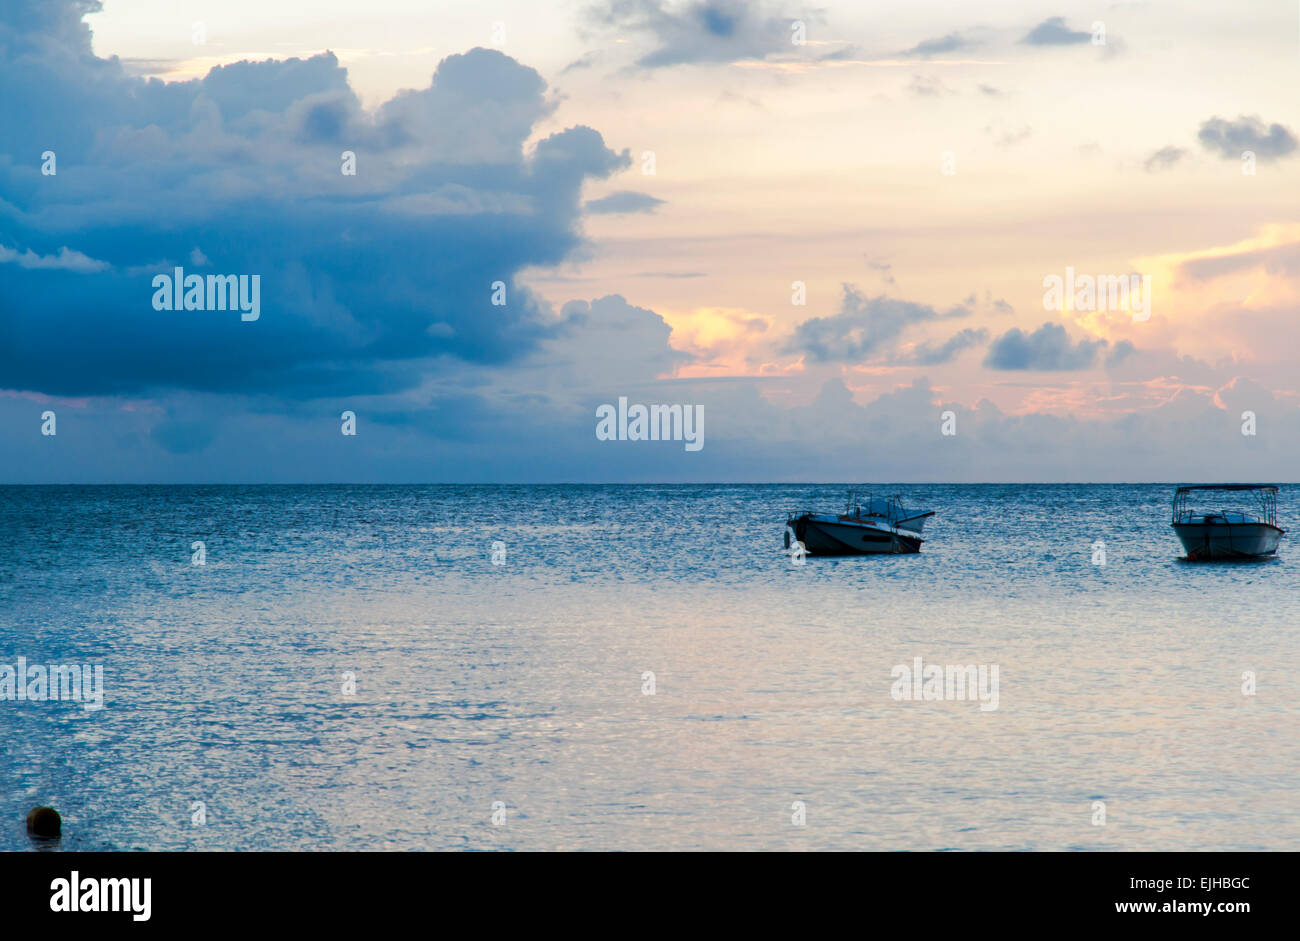 The beautiful sunset view of Mauritius - Stock Image